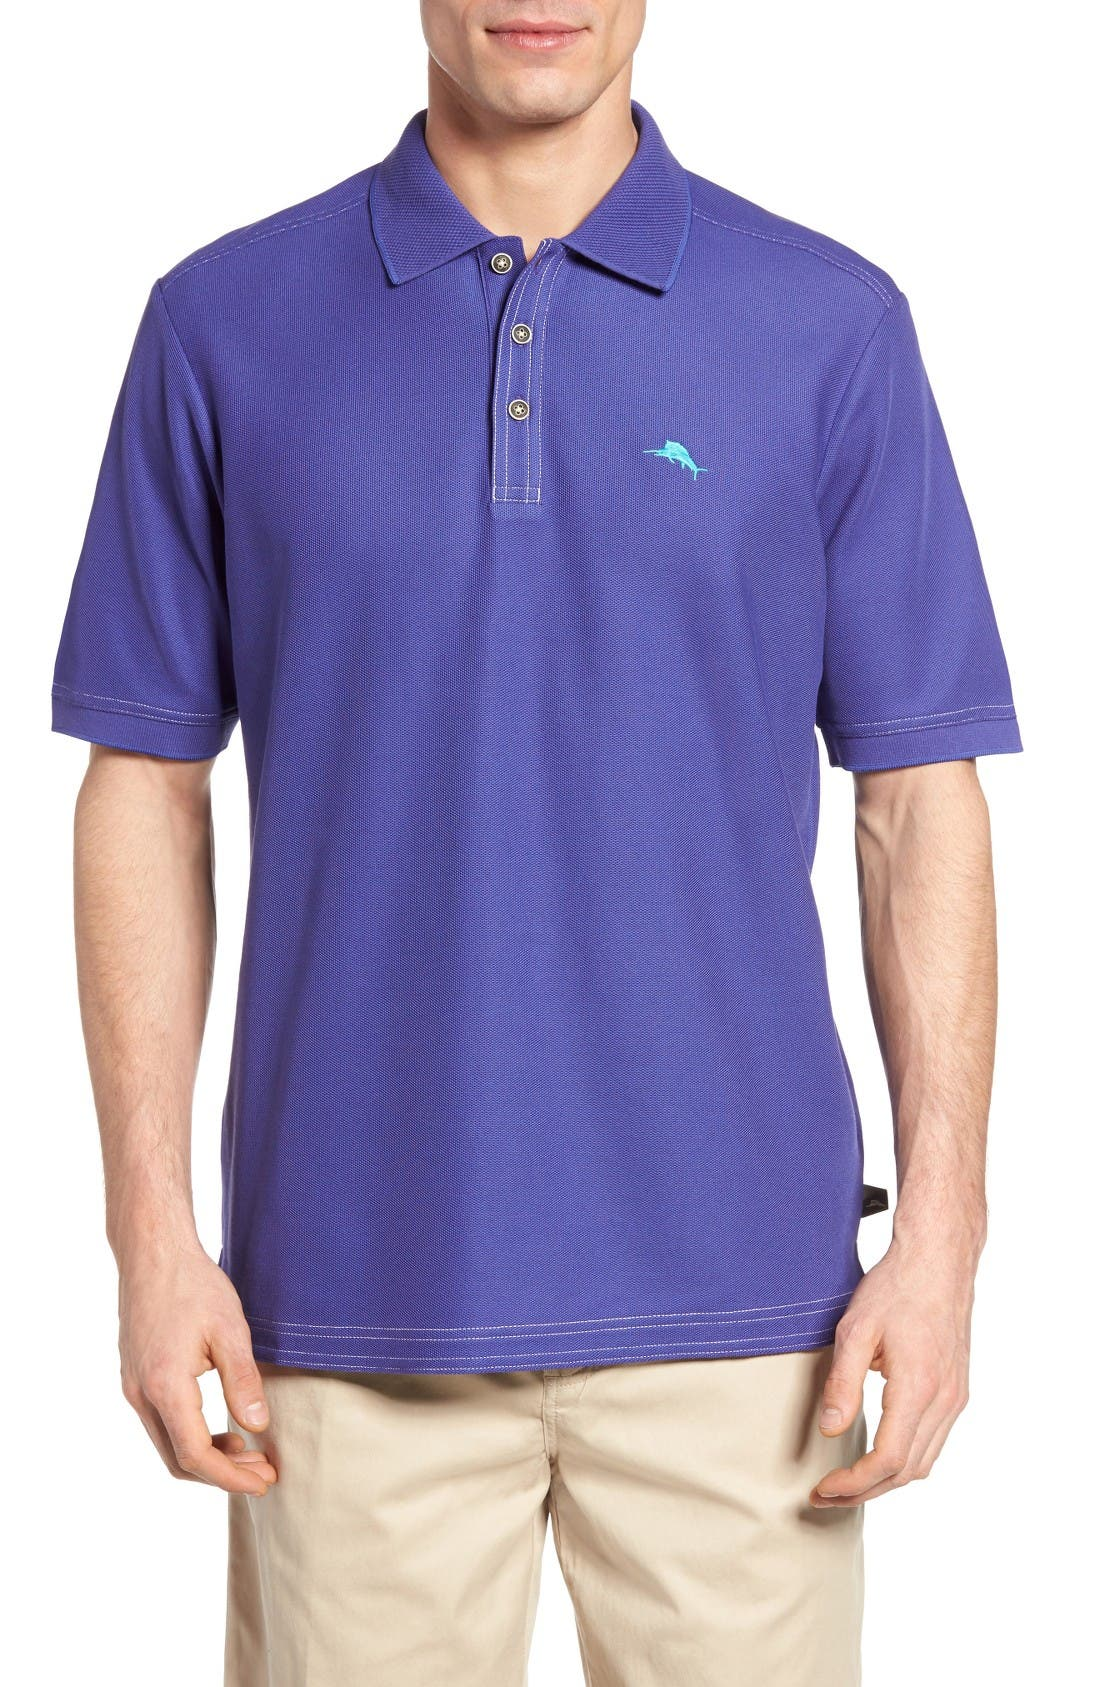 Tommy Bahama 'The Emfielder' Original Fit Piqué Polo